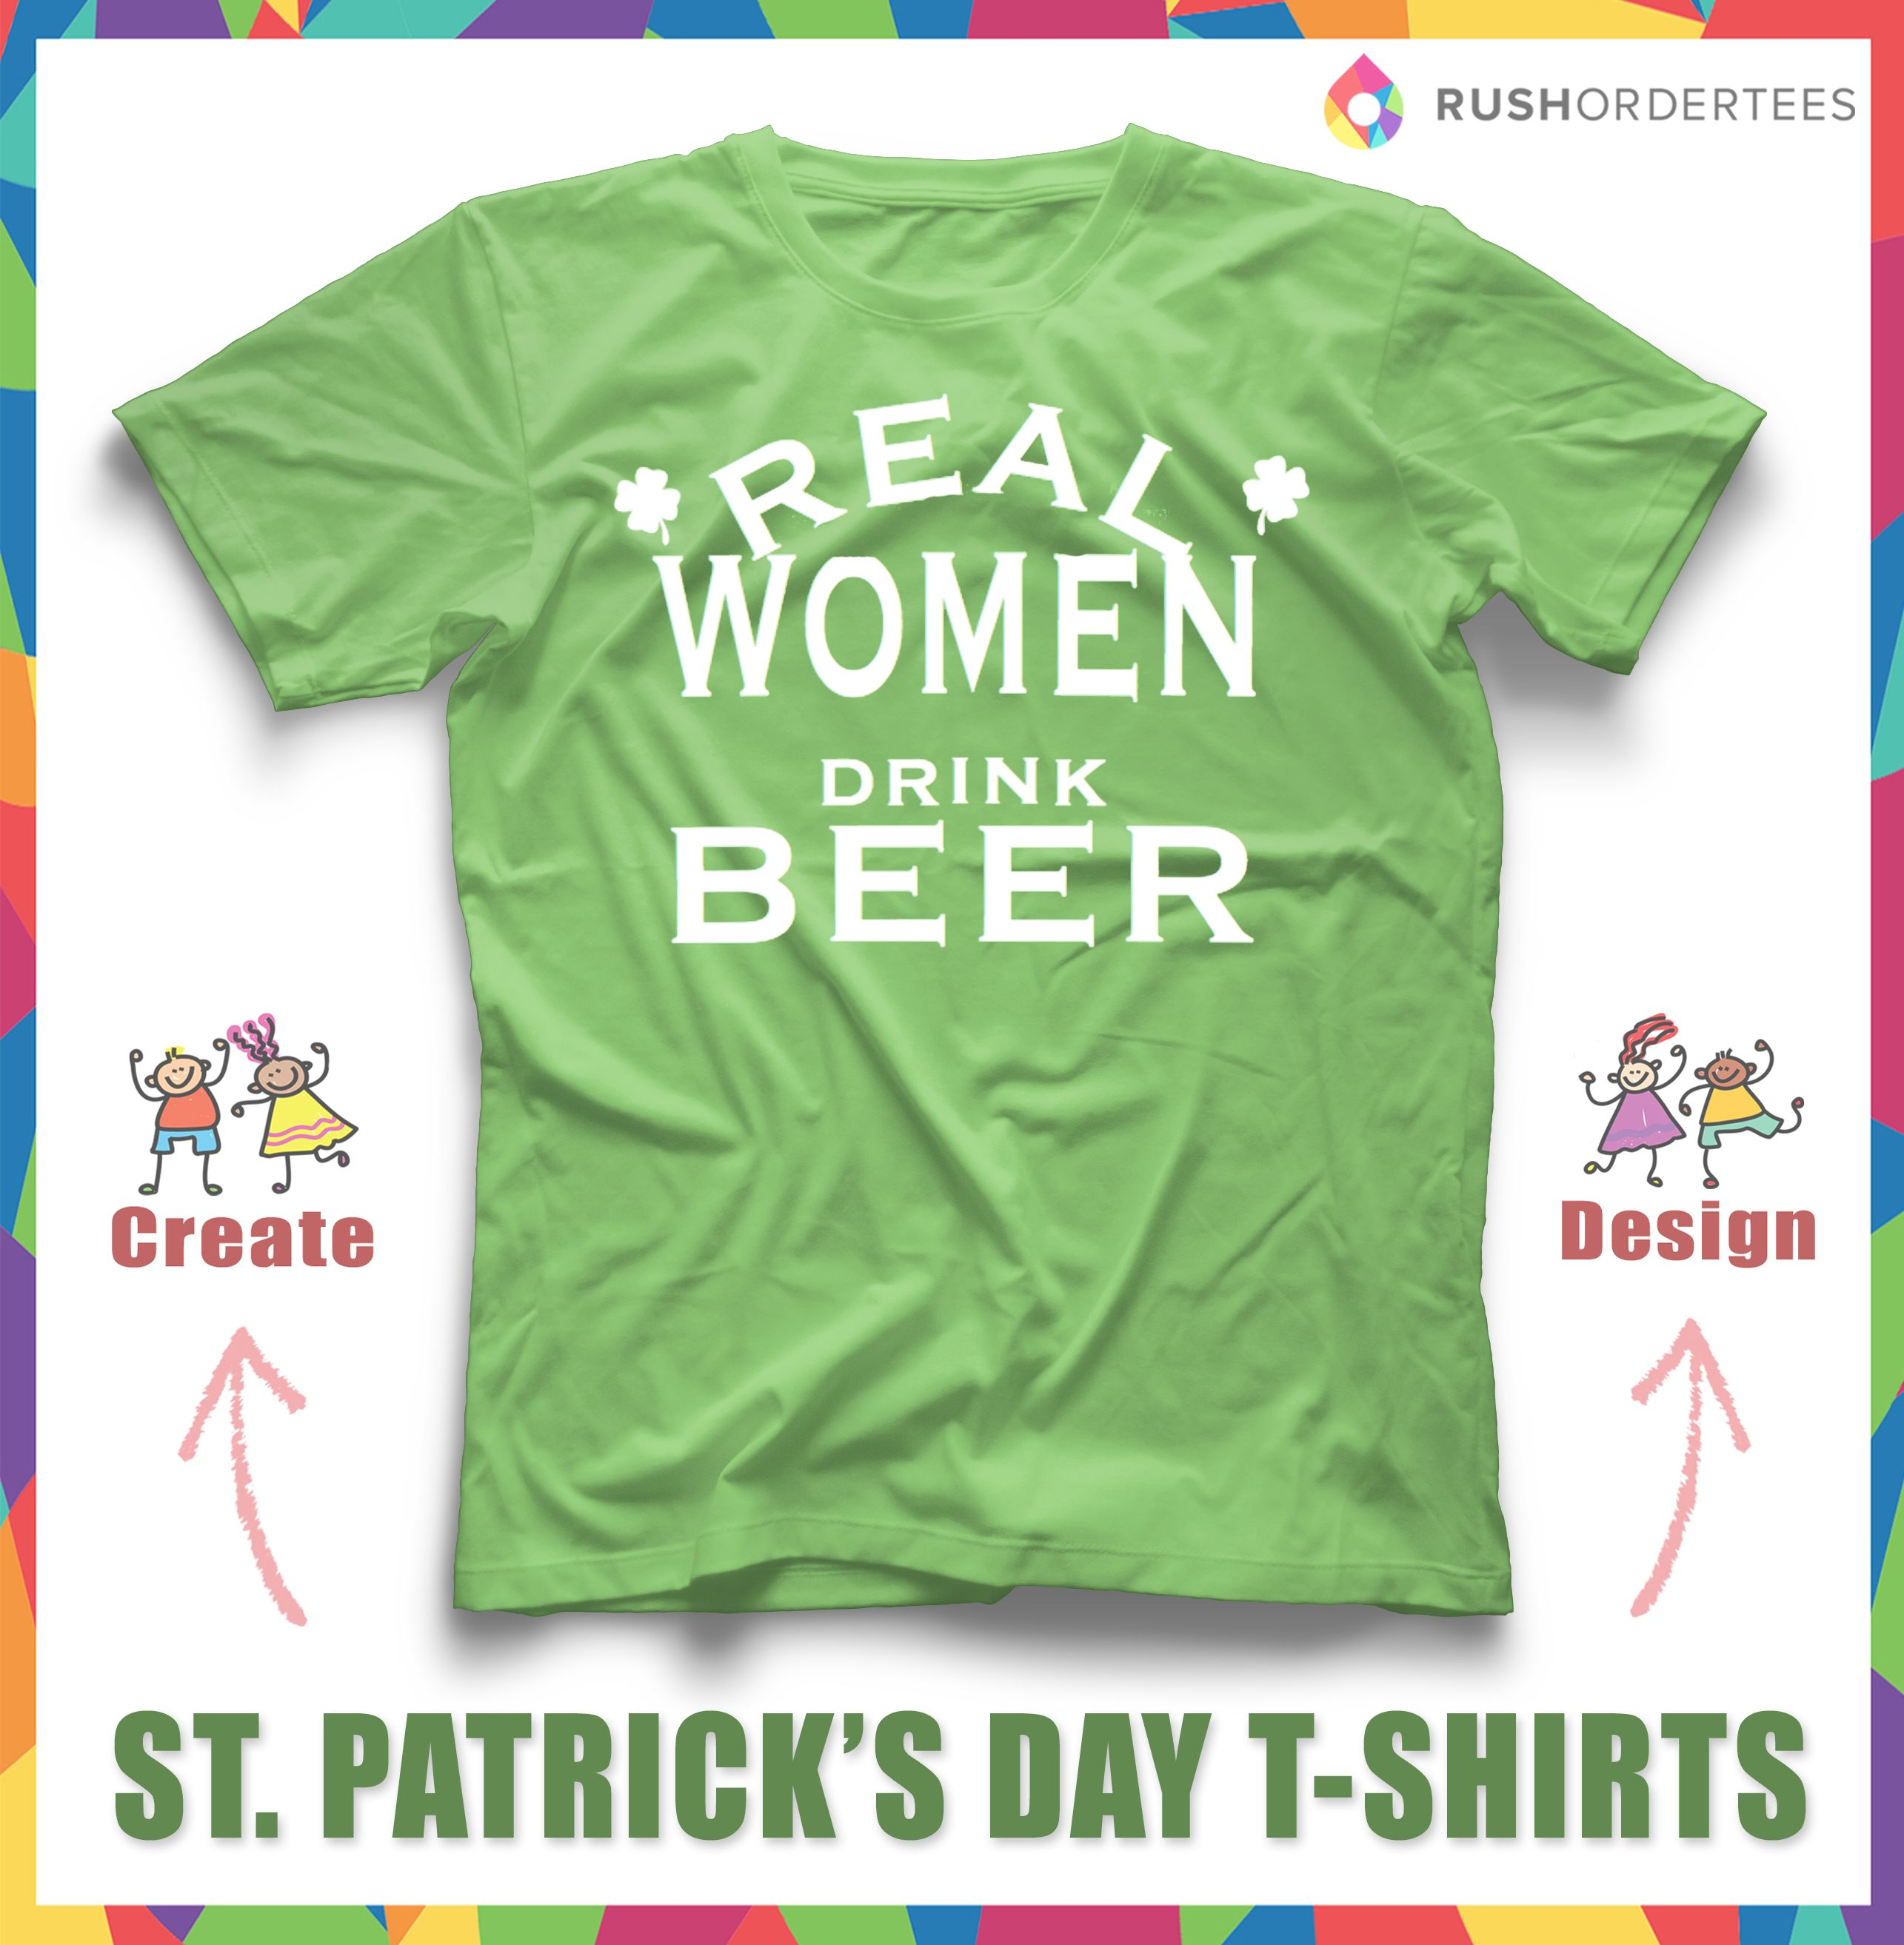 66386e31 ... for your #StPatricksDay custom tee? Create your own for your team or  your event. #PaddysDay made fun by you! St. Patrick's Day T-Shirt Idea's # Design